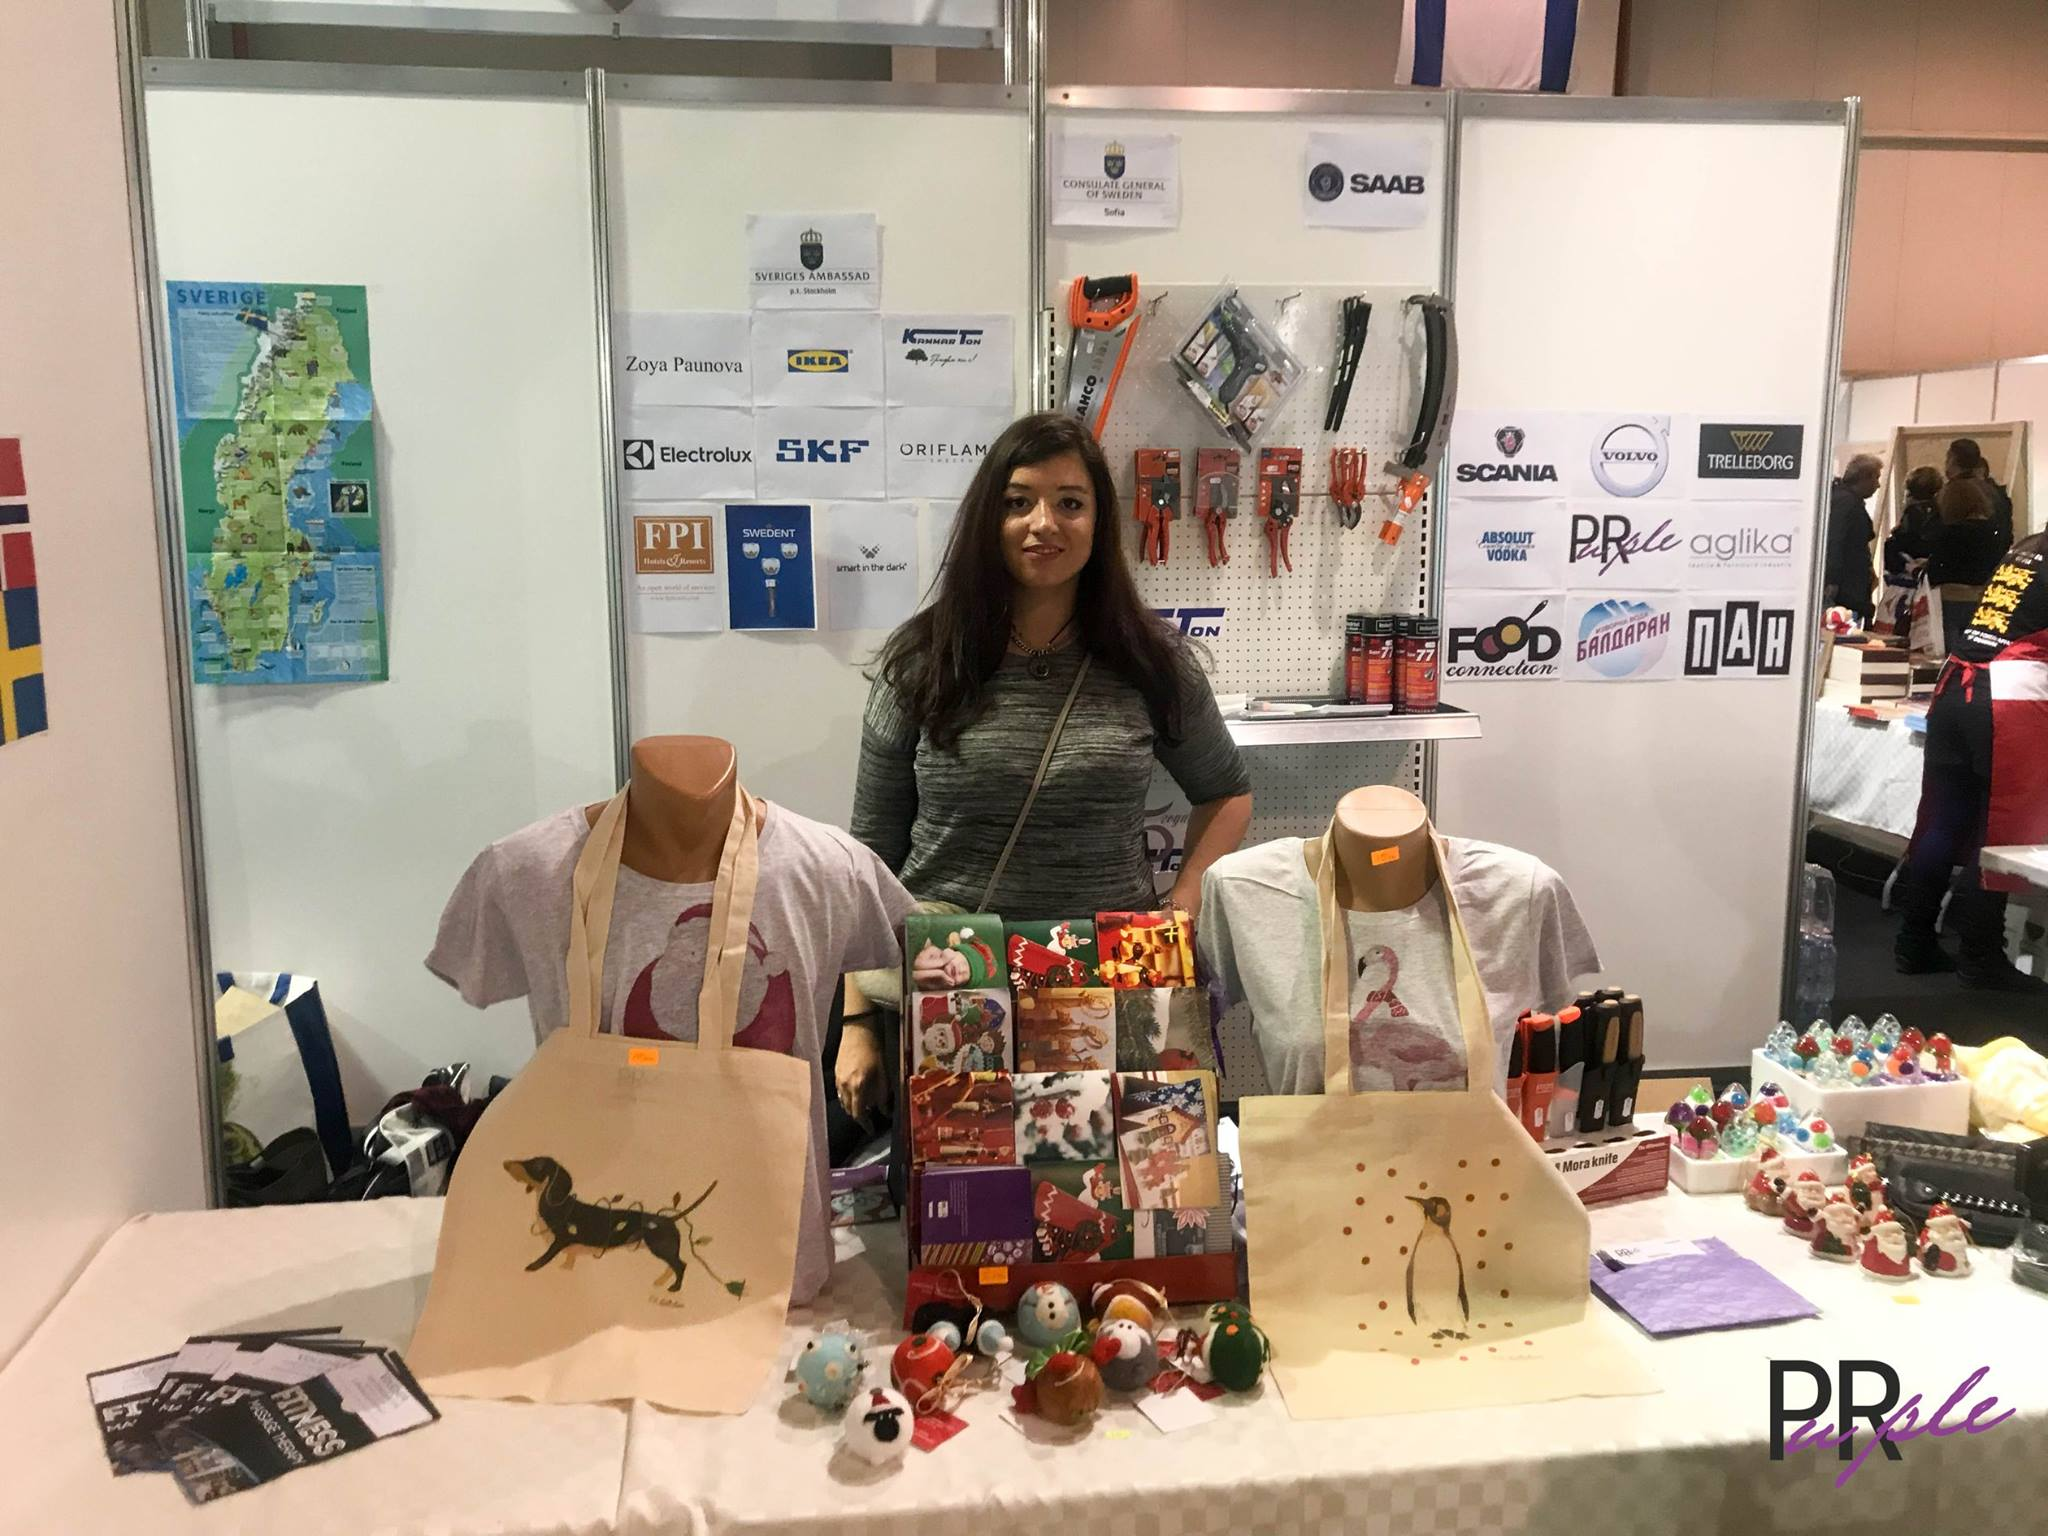 8-23rd-IWC-Charity-Bazaar-Christmas-The-world-comes-to-you-IEC-Sofia-Purple-PR-campaign